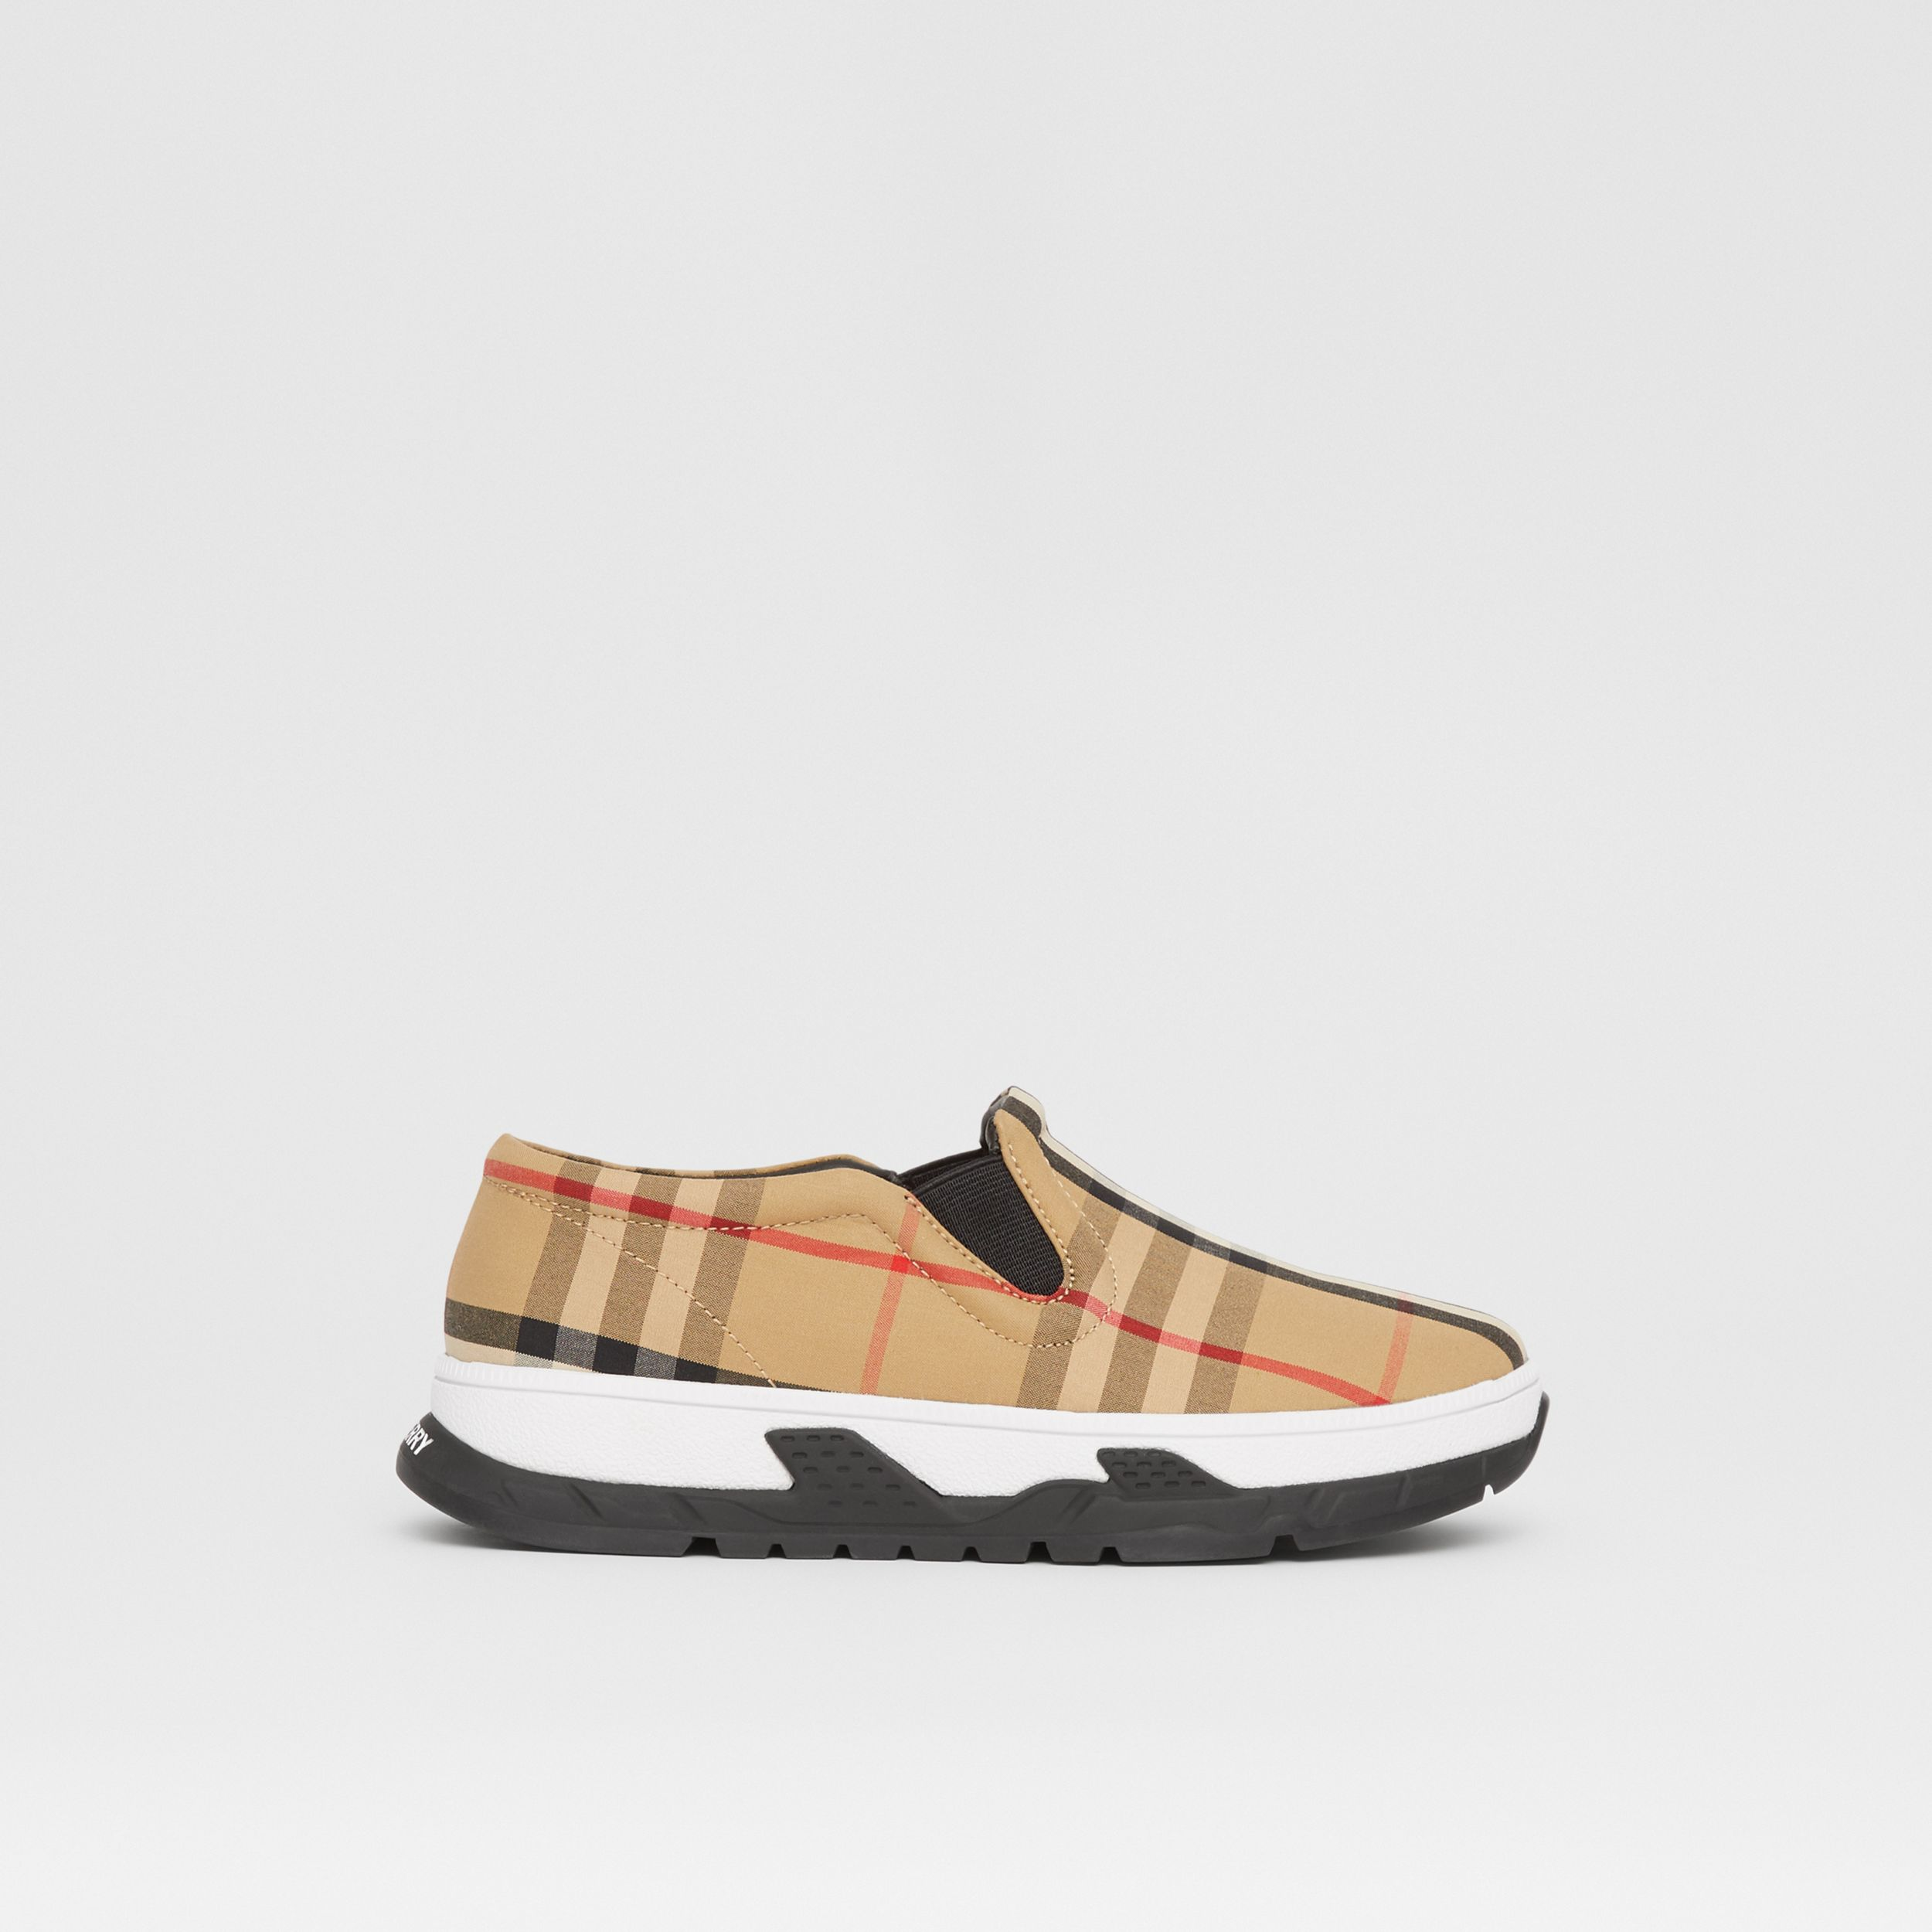 Vintage Check Cotton Slip-on Sneakers in Archive Beige - Children | Burberry Canada - 4